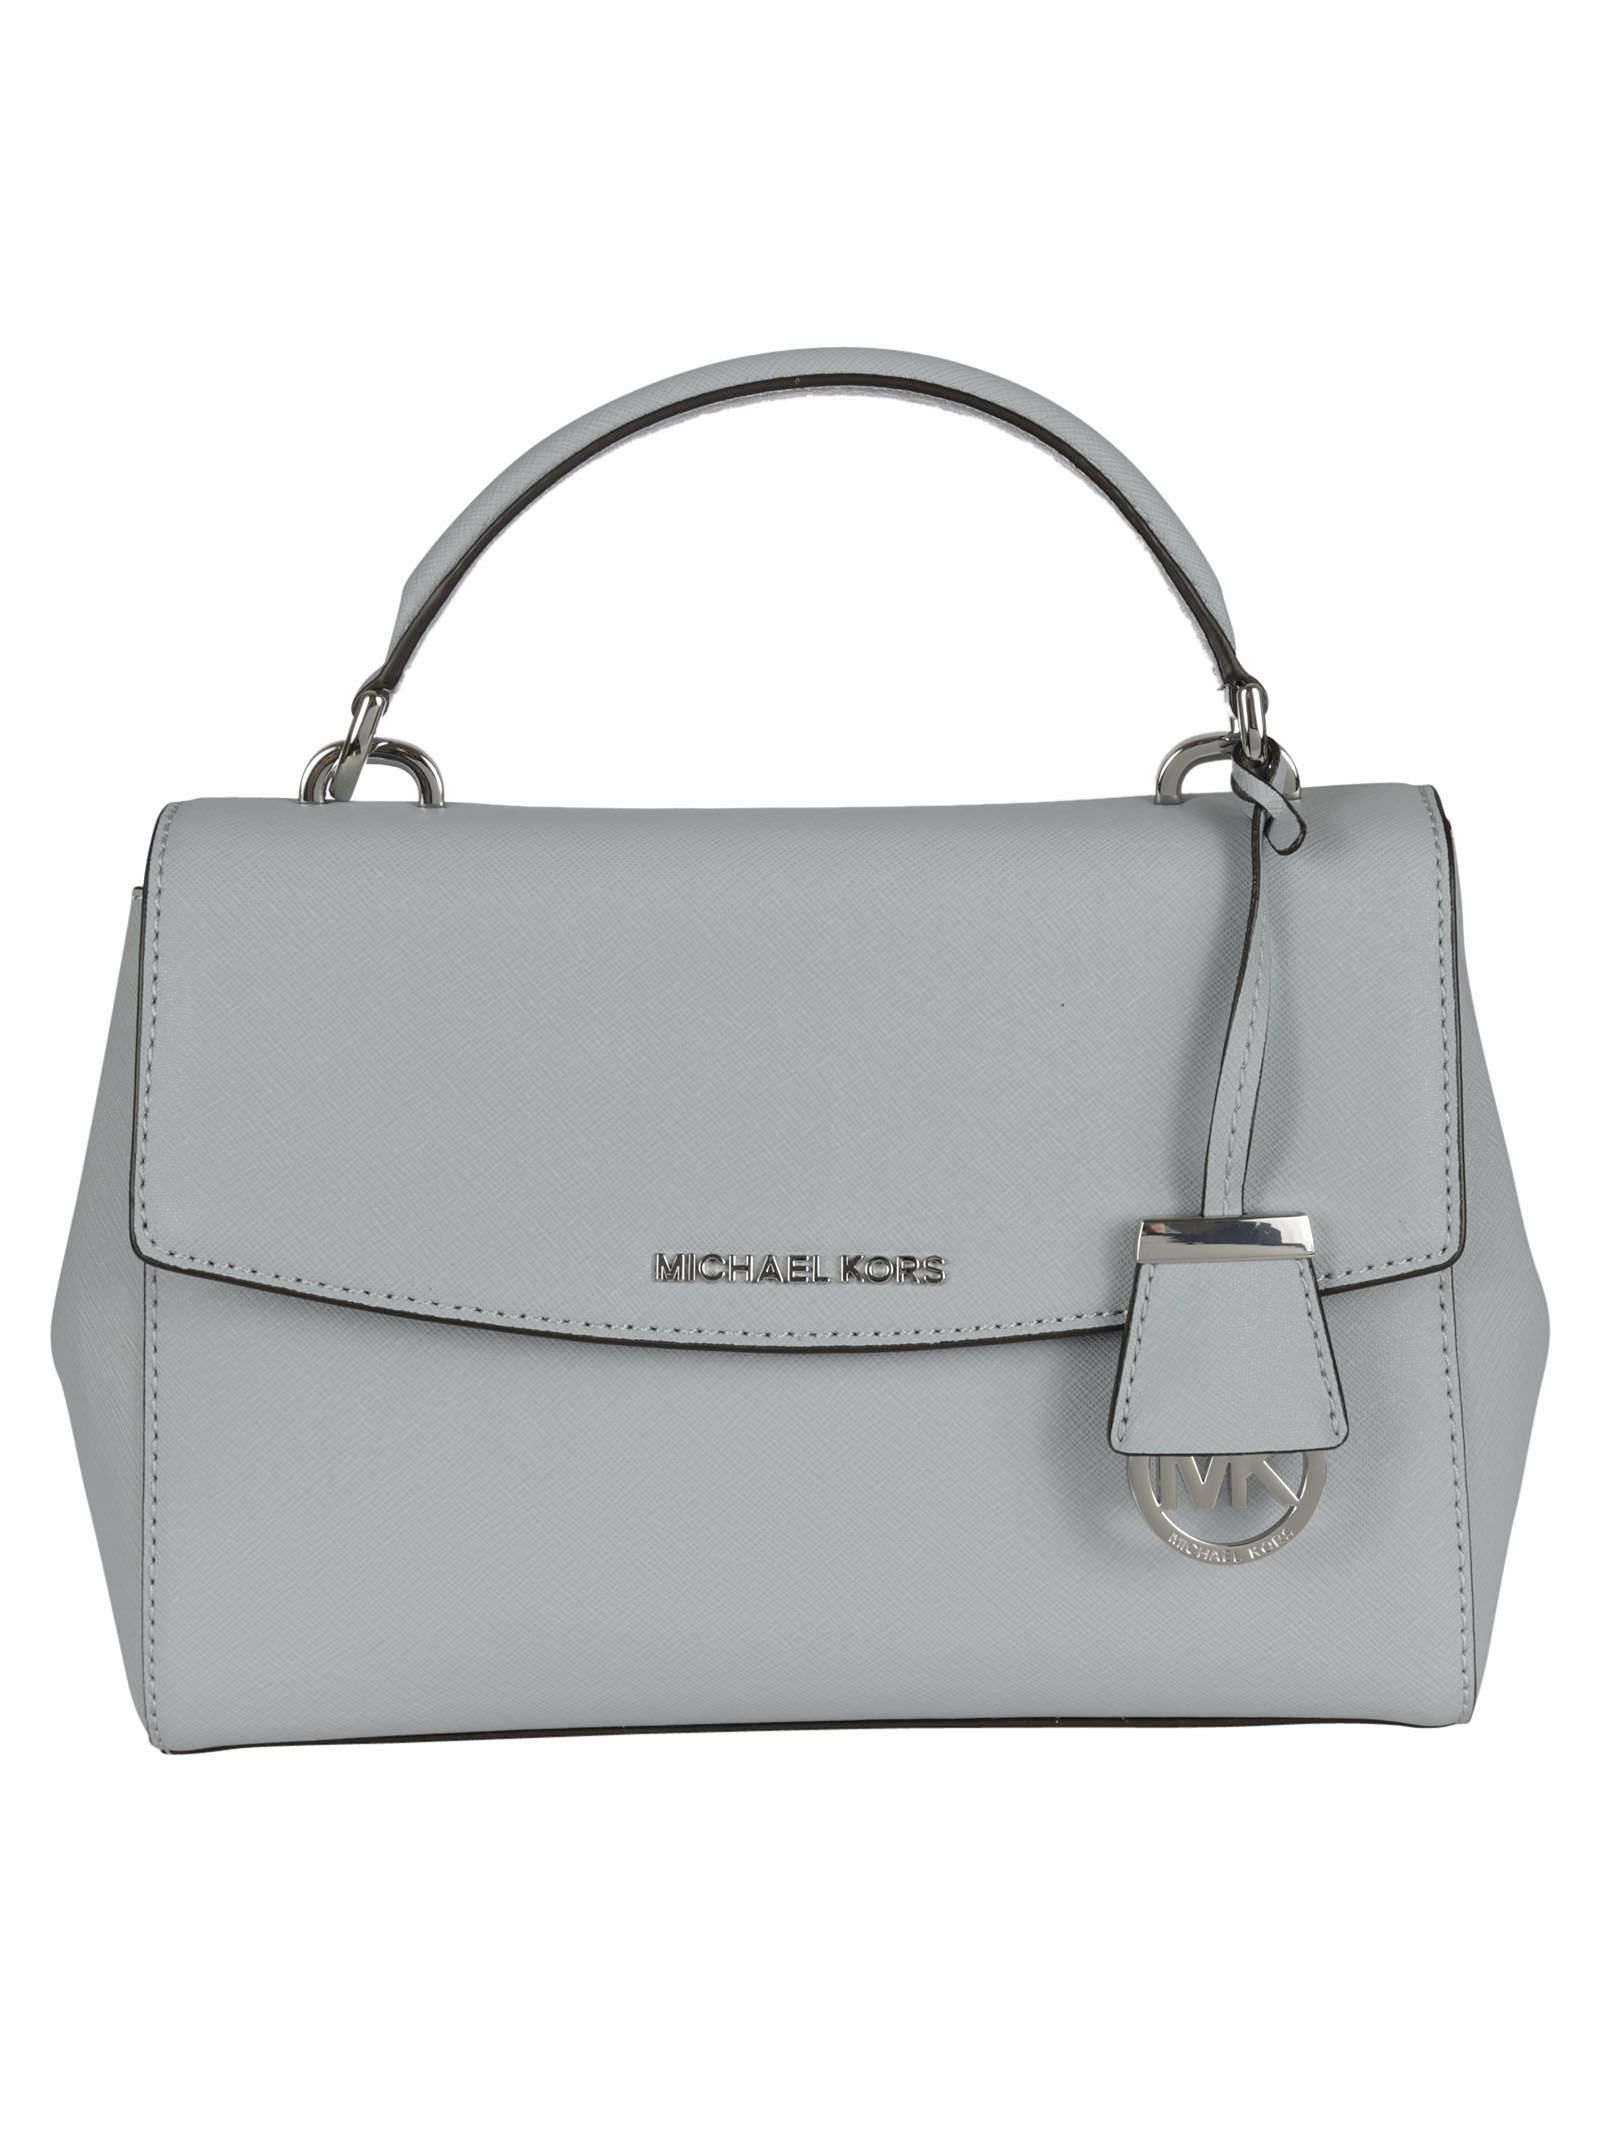 michael kors female 201920 dusty blue ava small crossbody